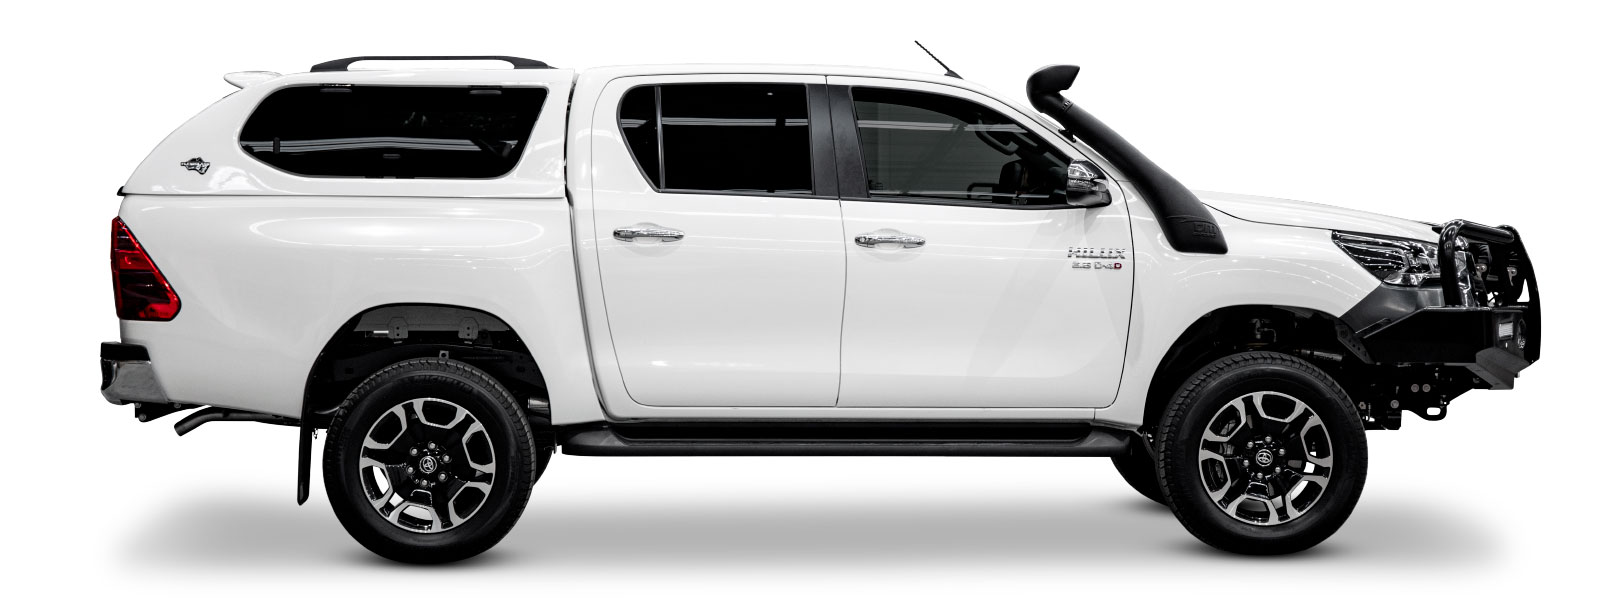 2020 Toyota Hilux Canopy Side-on